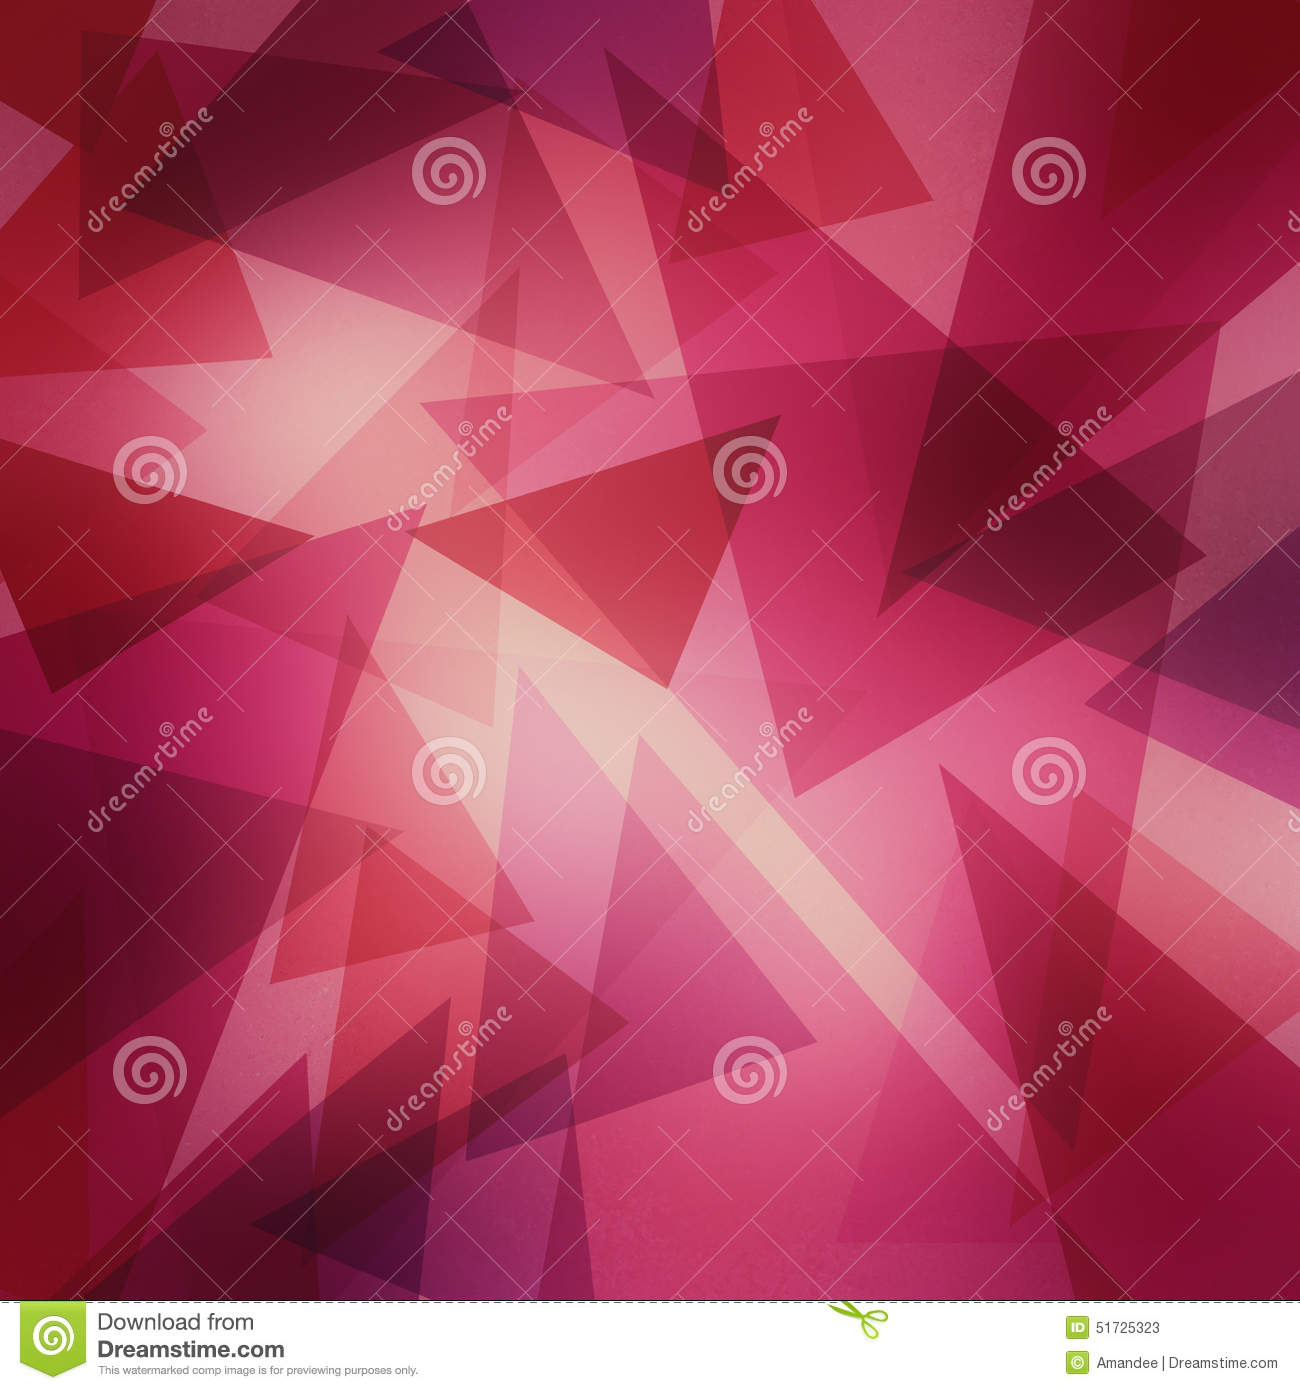 Abstract layered pink and purple triangle pattern with bright center, fun contemporary art background design